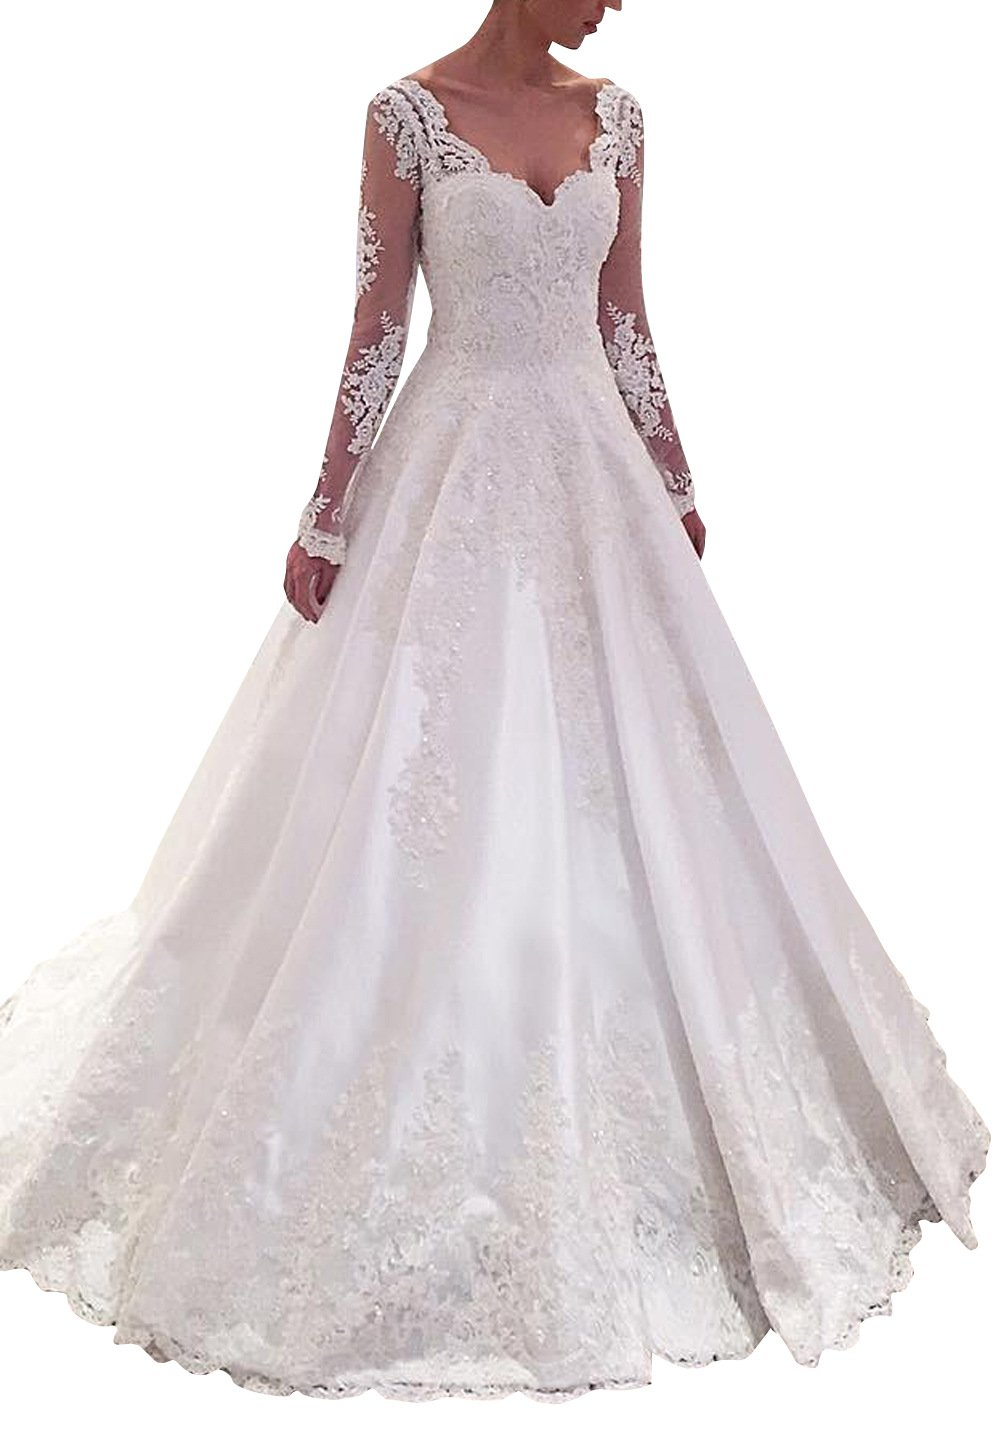 MARSEN Sweetheart Backless Wedding Dress Long Beaded Lace Appliques Bridal Gown Satin A Line Size 12